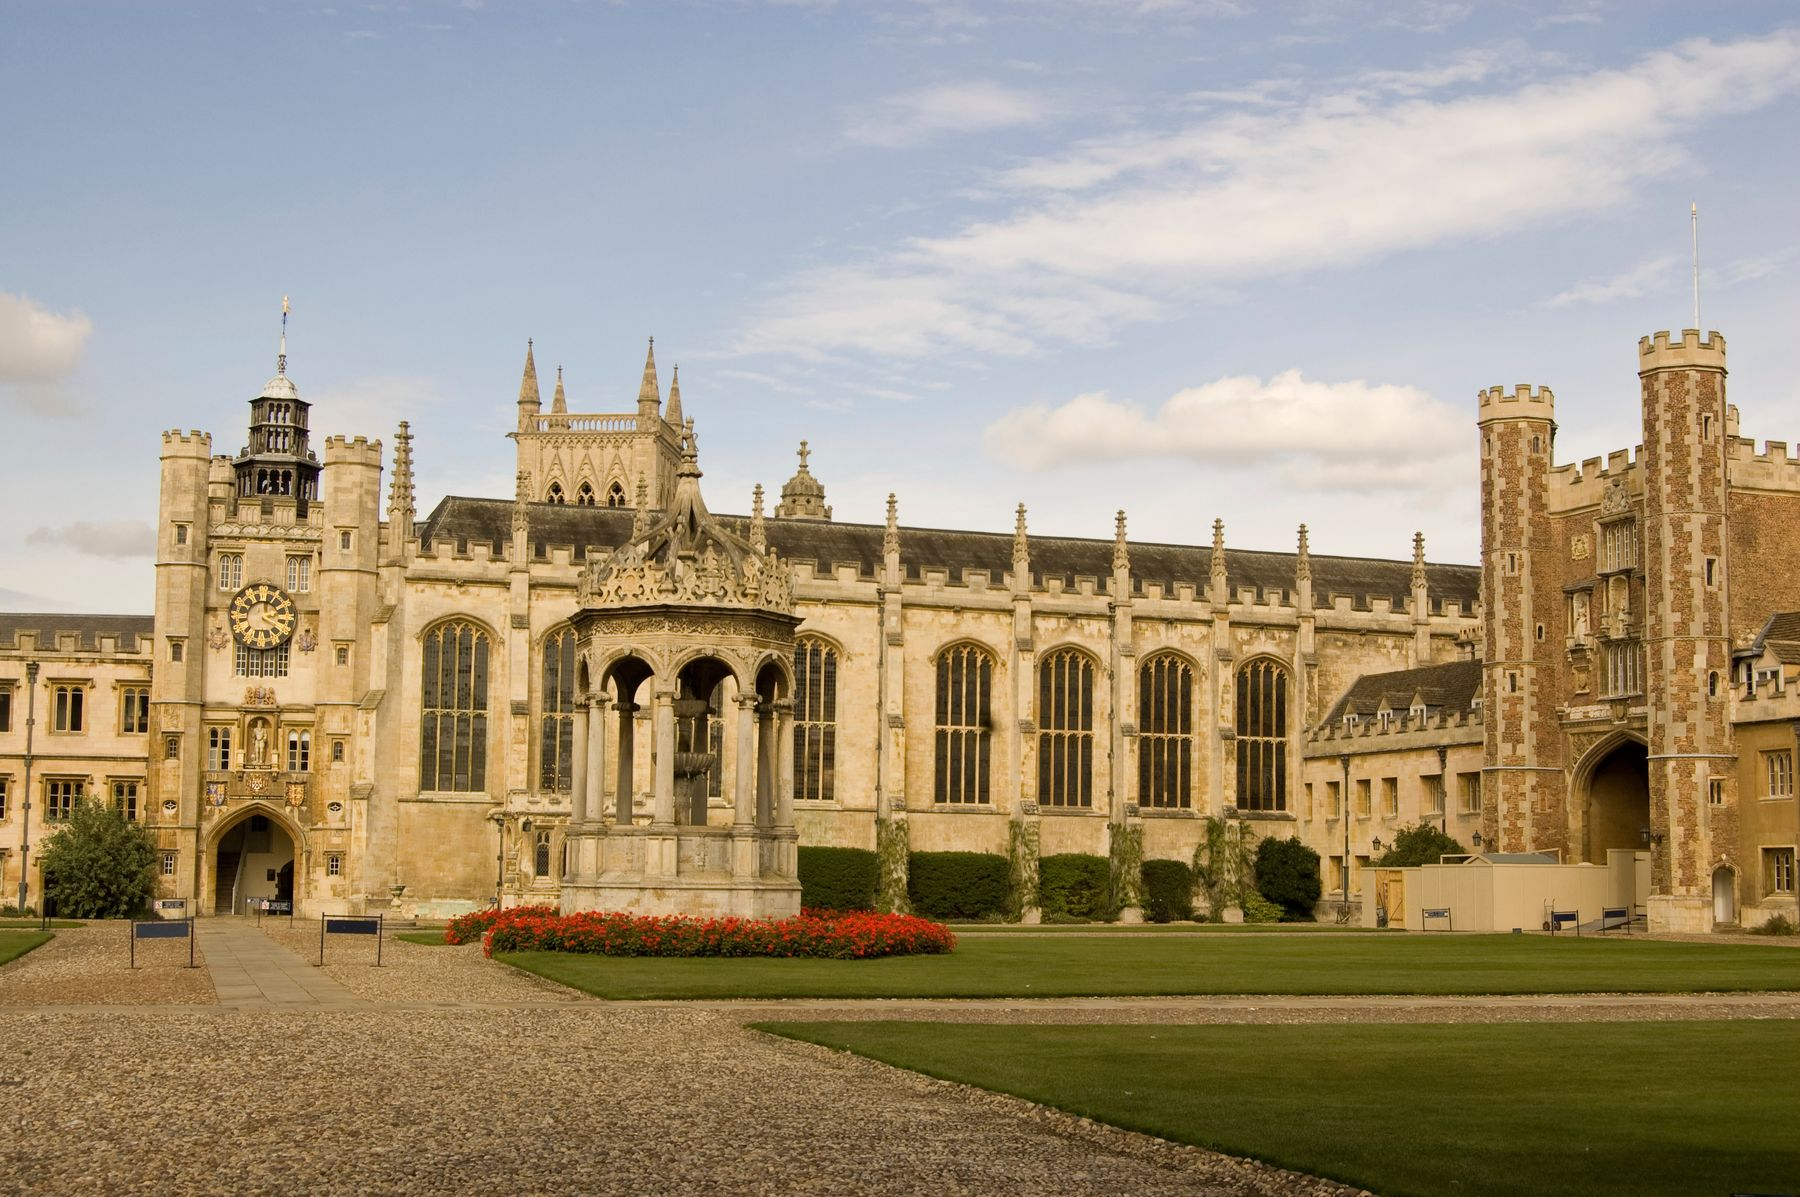 Stunning ancient architecture is one the reasons that Cambridge is among the best cities to visit in the UK